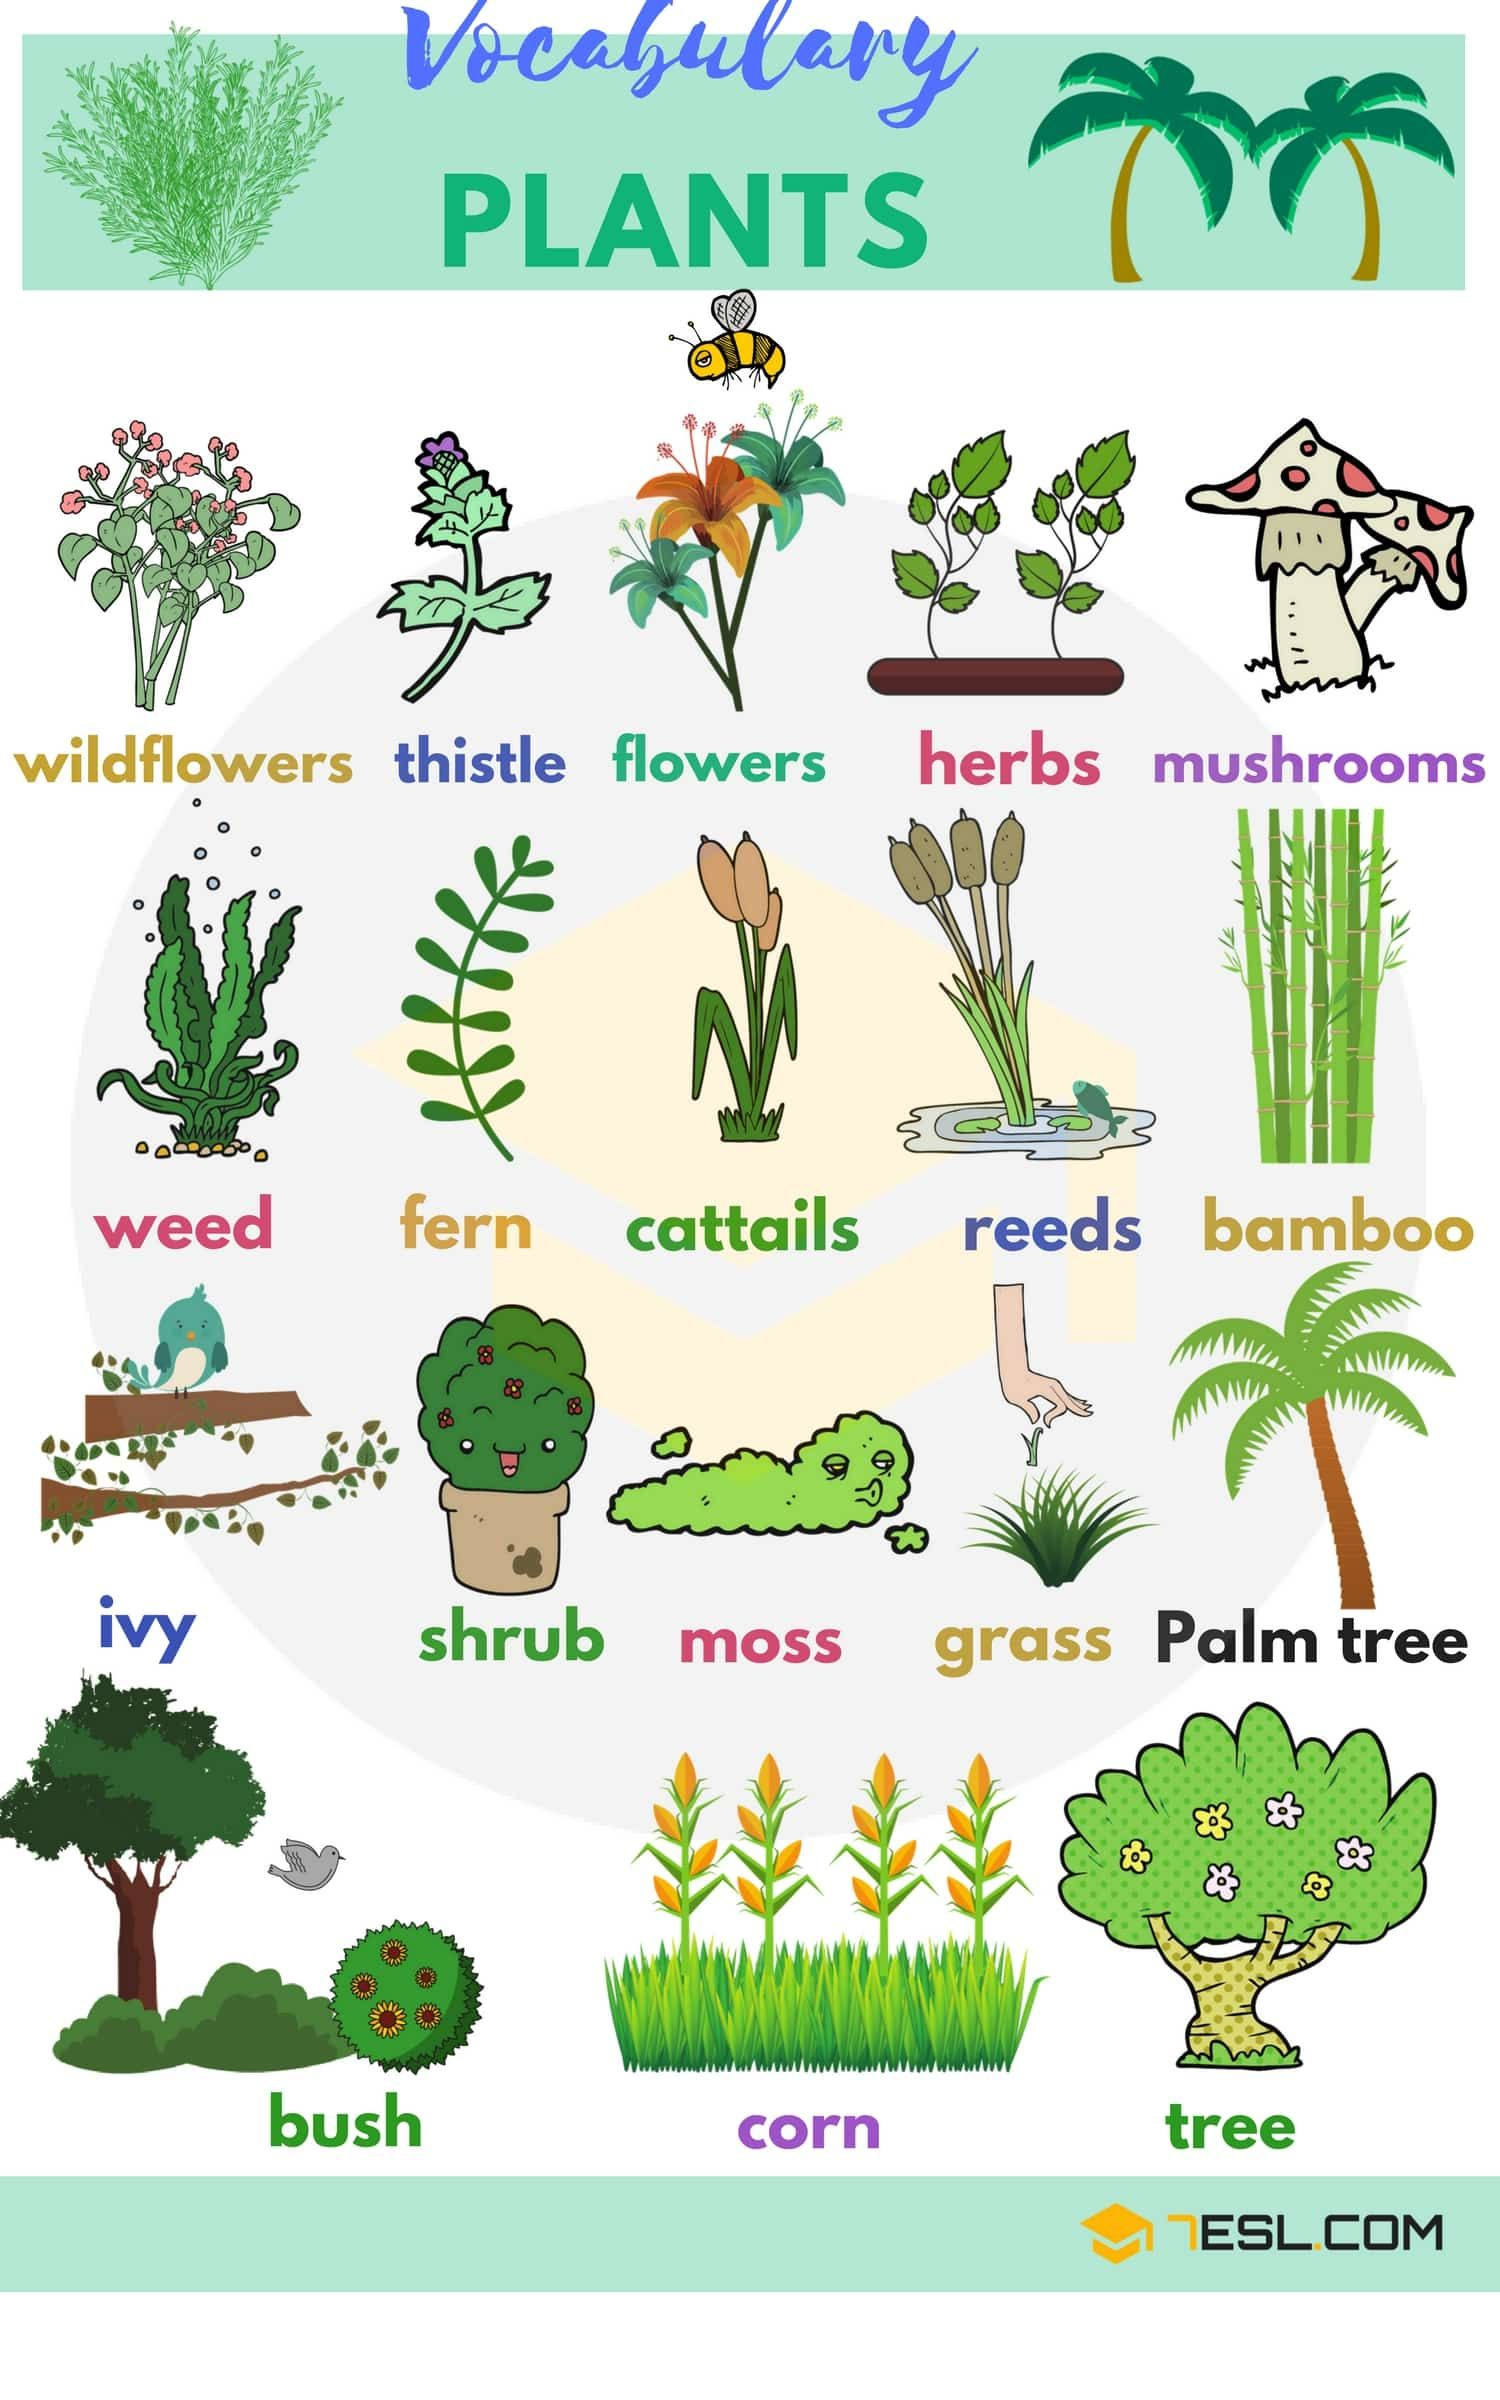 English Vocabulary for Plants Vocabulario en ingles